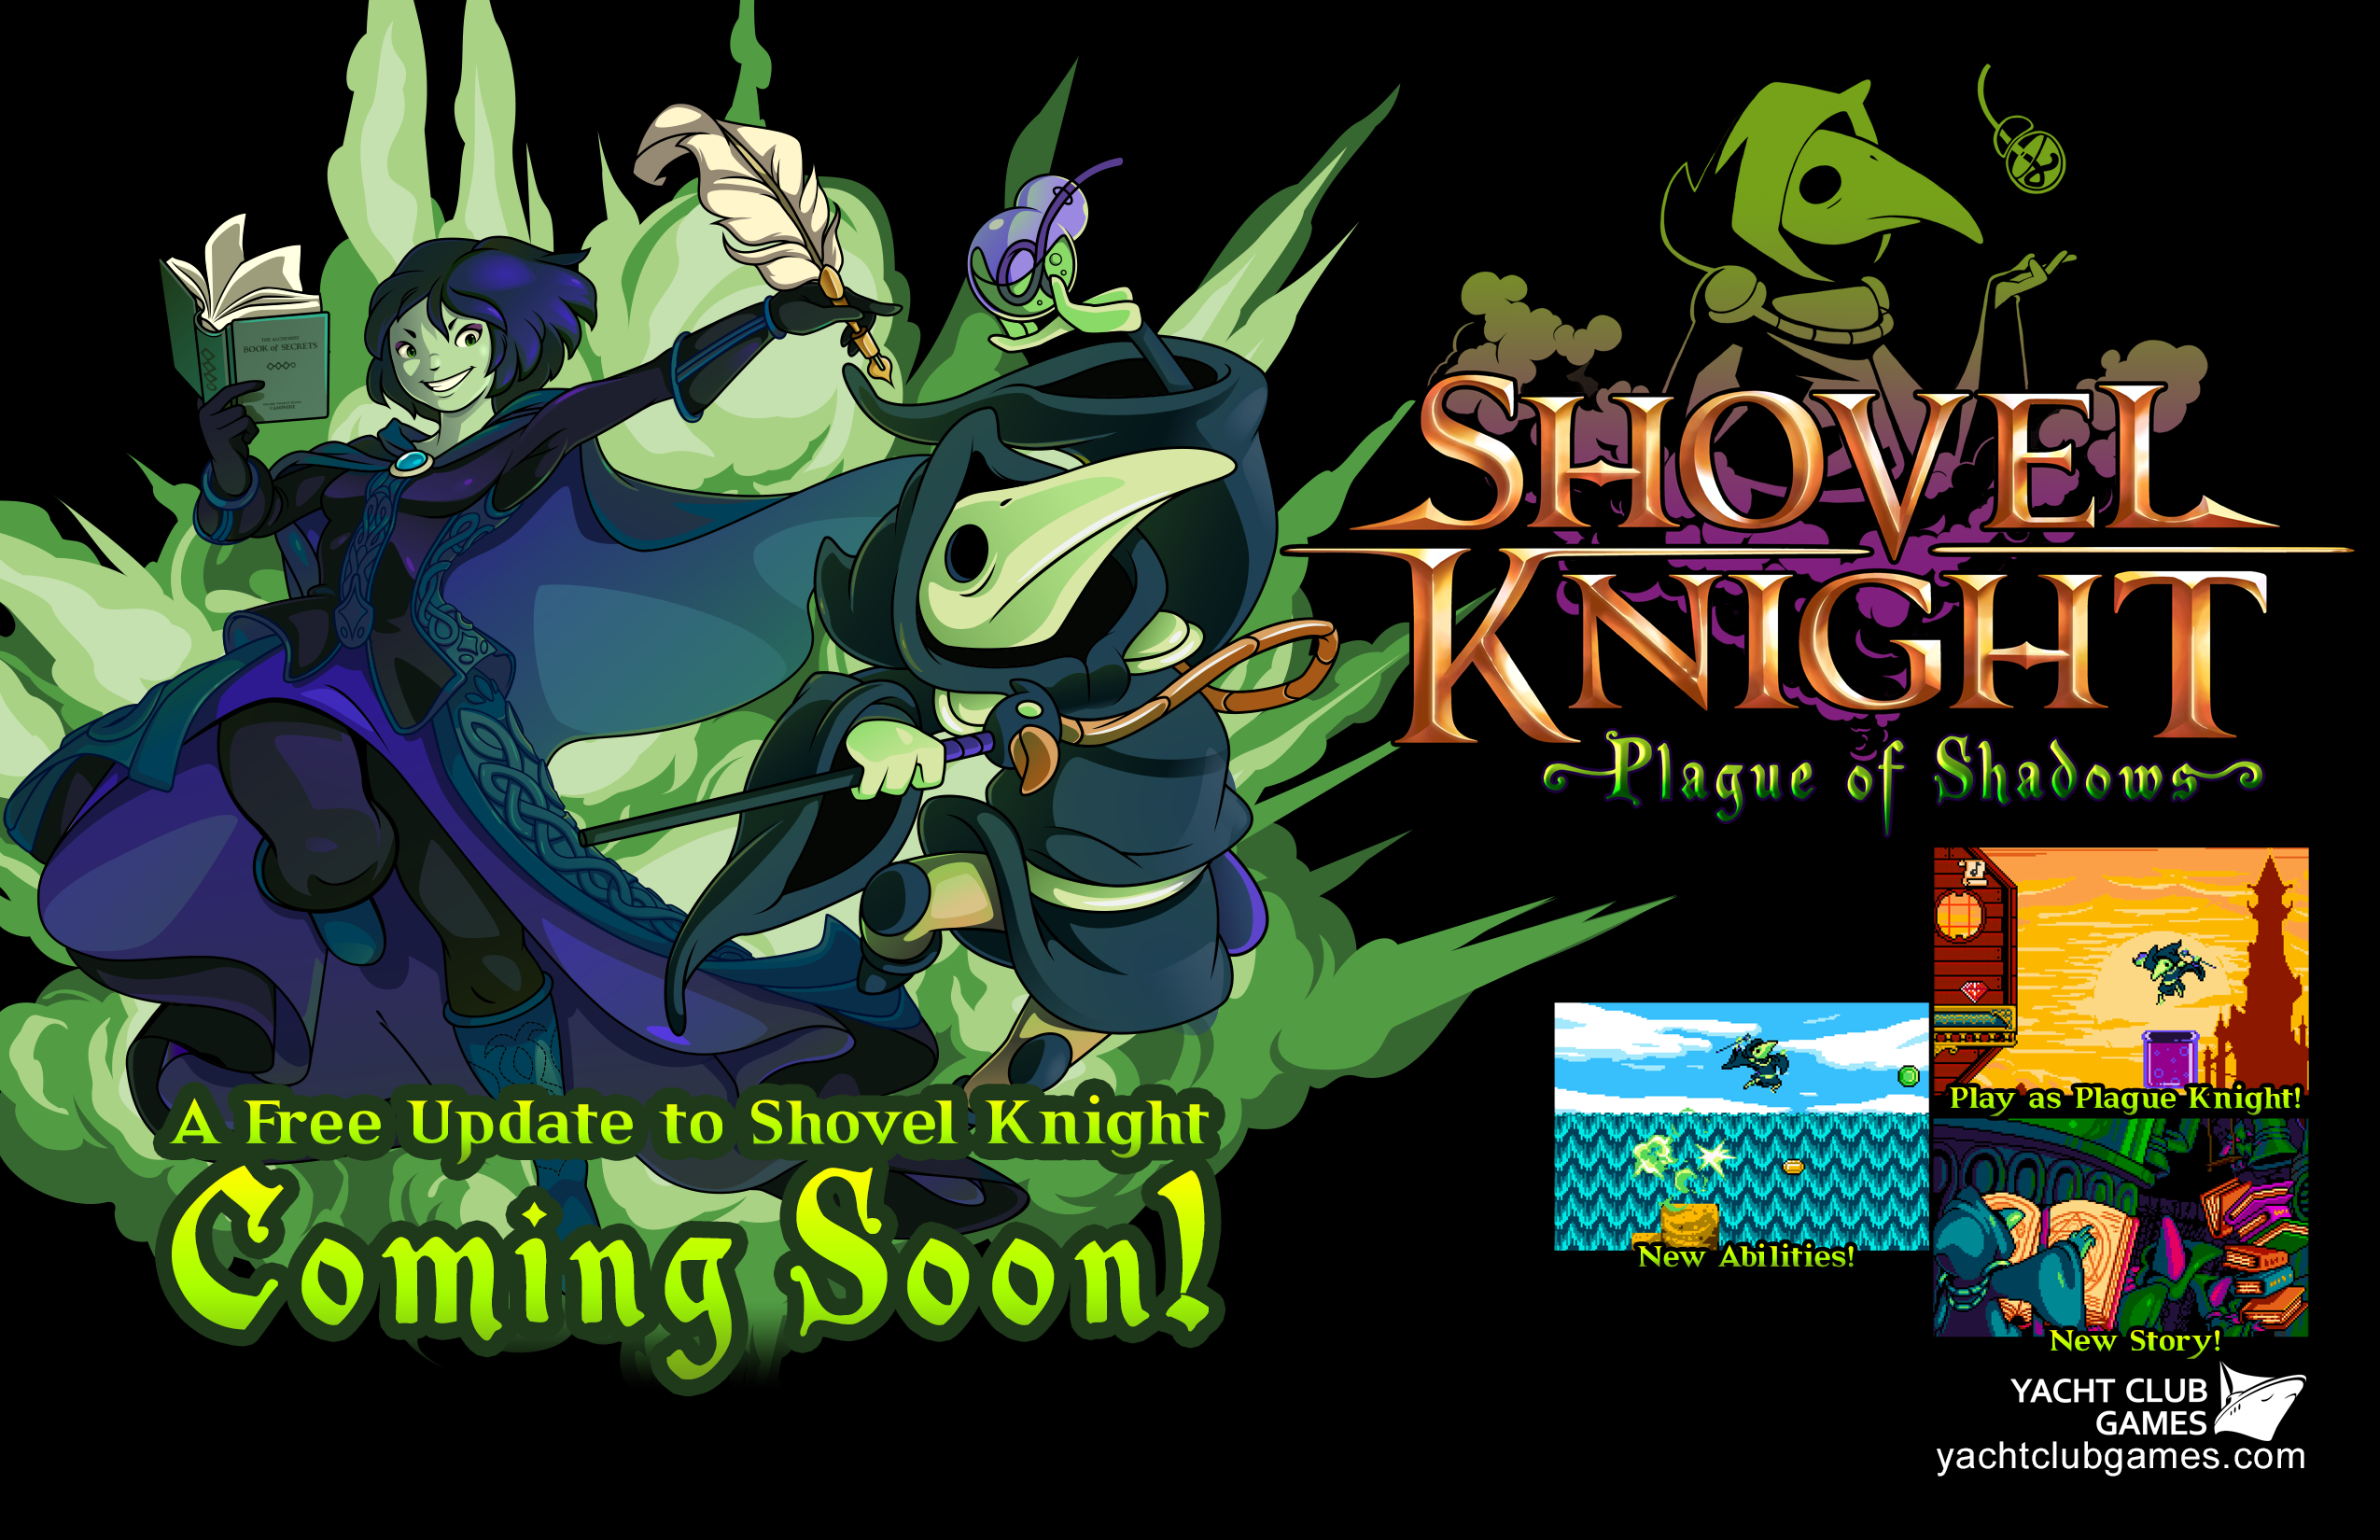 eshop: Shovel Knight Plague of Shadows Expansion is Expected To Hit The Wii U by Early Summer! Plague_Flyer